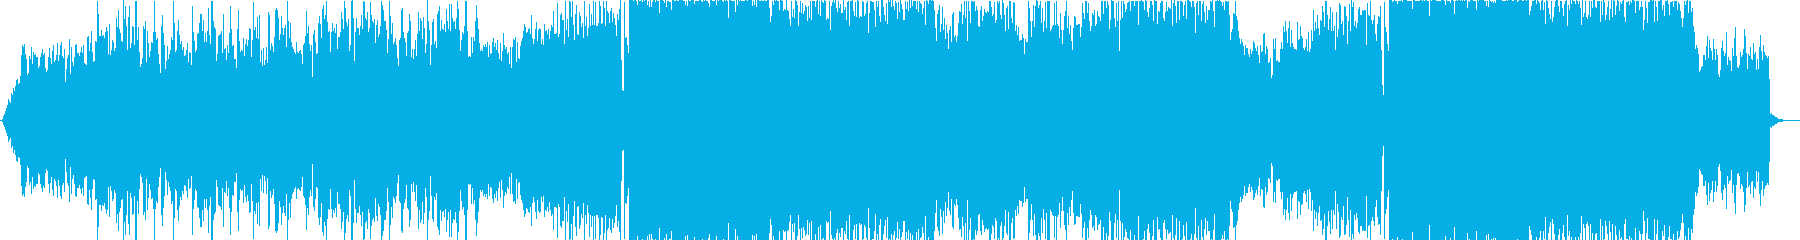 Asian EDM played by Niko's reproduced waveform